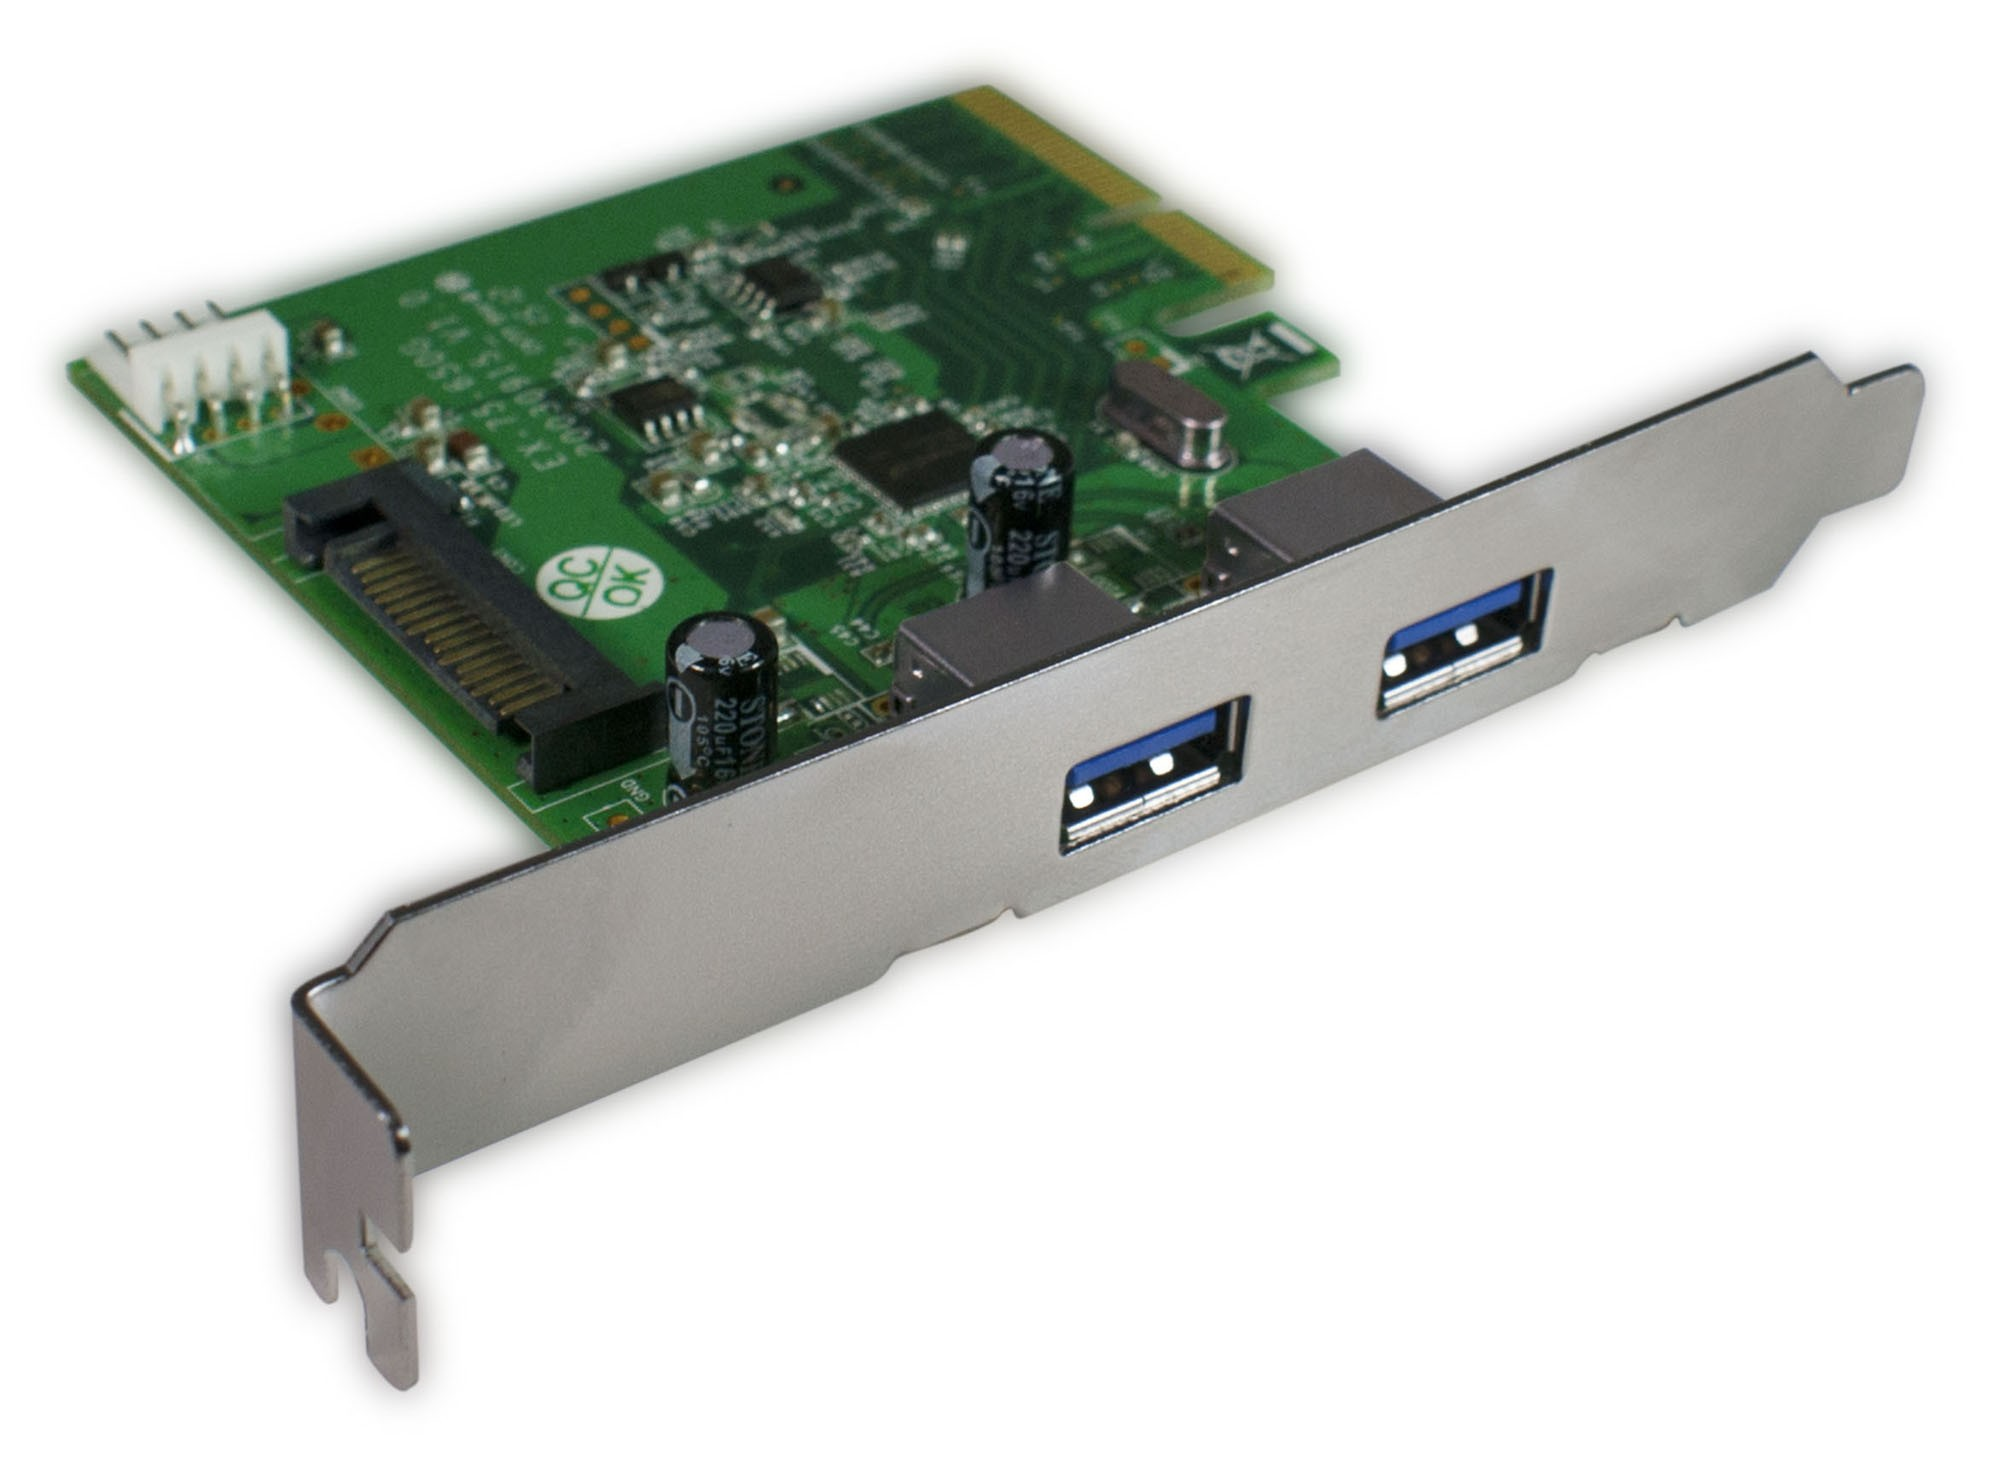 HornetTek Falcon USB 3.1 to PCIE Card Dual Type - A Ports 10 Gbps Max (HT-PCIEFAPA)